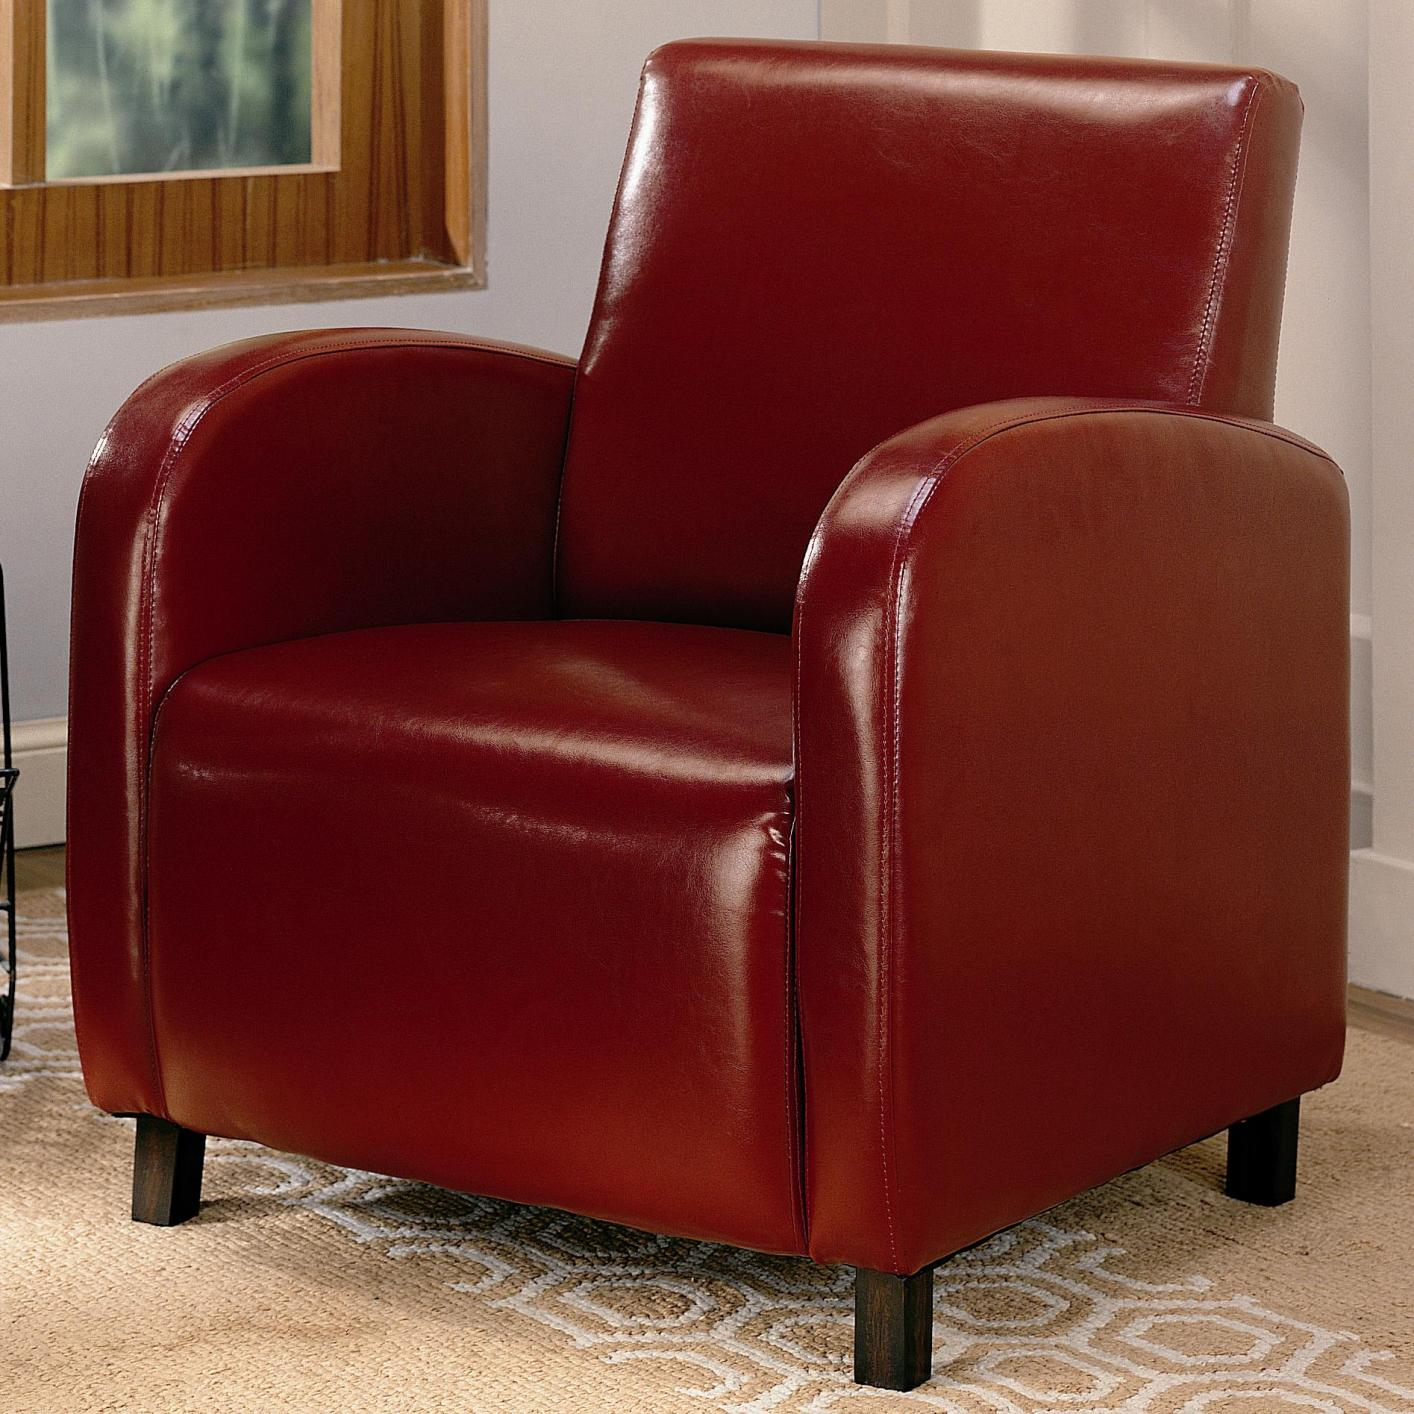 Red Leather Accent Chair Steal A Sofa Furniture Outlet Los